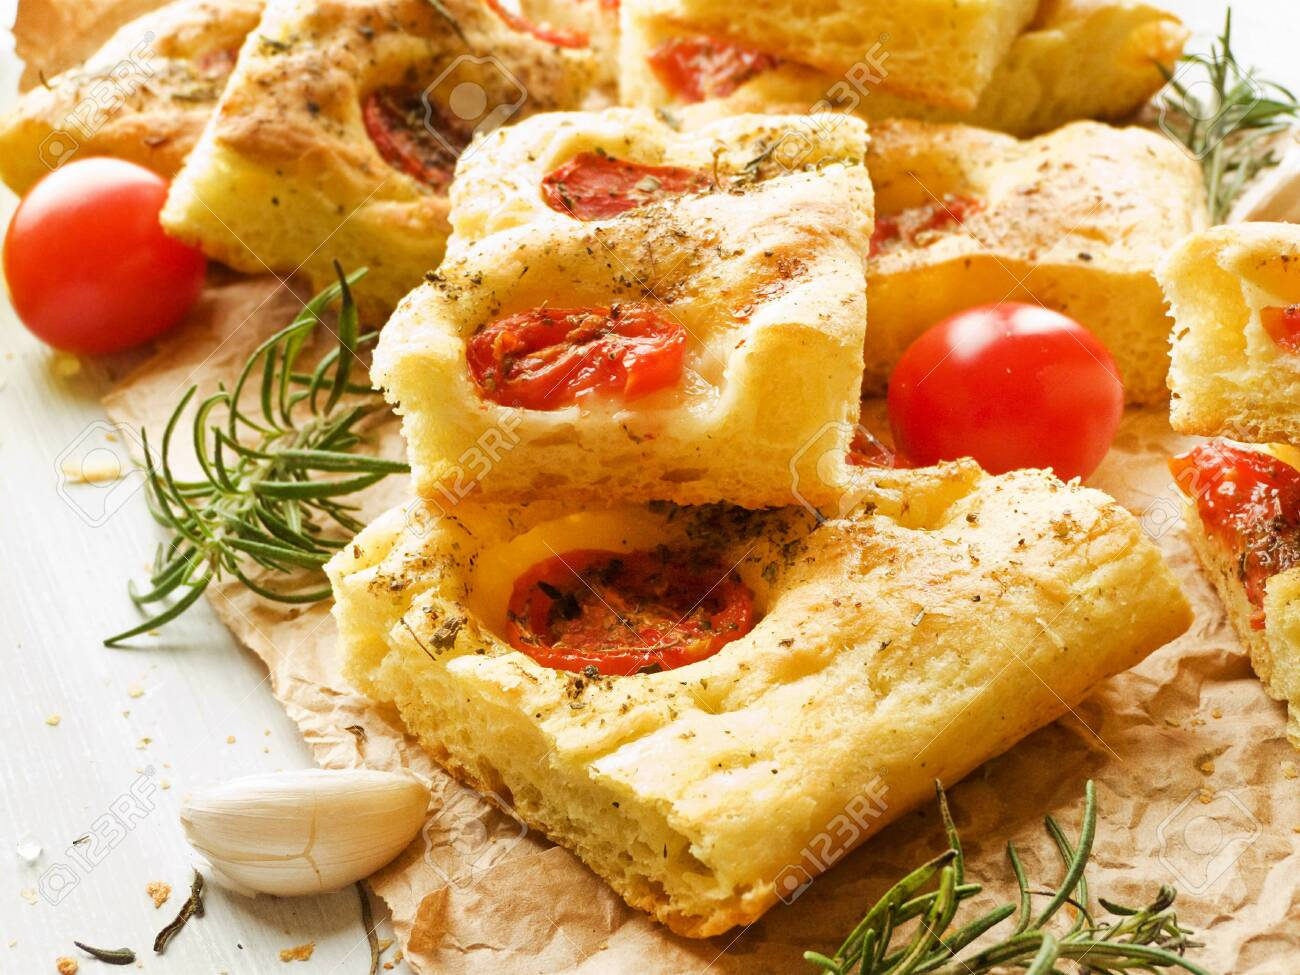 Italian Focaccia Bread With Rosemary Garlic Cherry Tomatoes Stock Photo Picture And Royalty Free Image Image 120363483